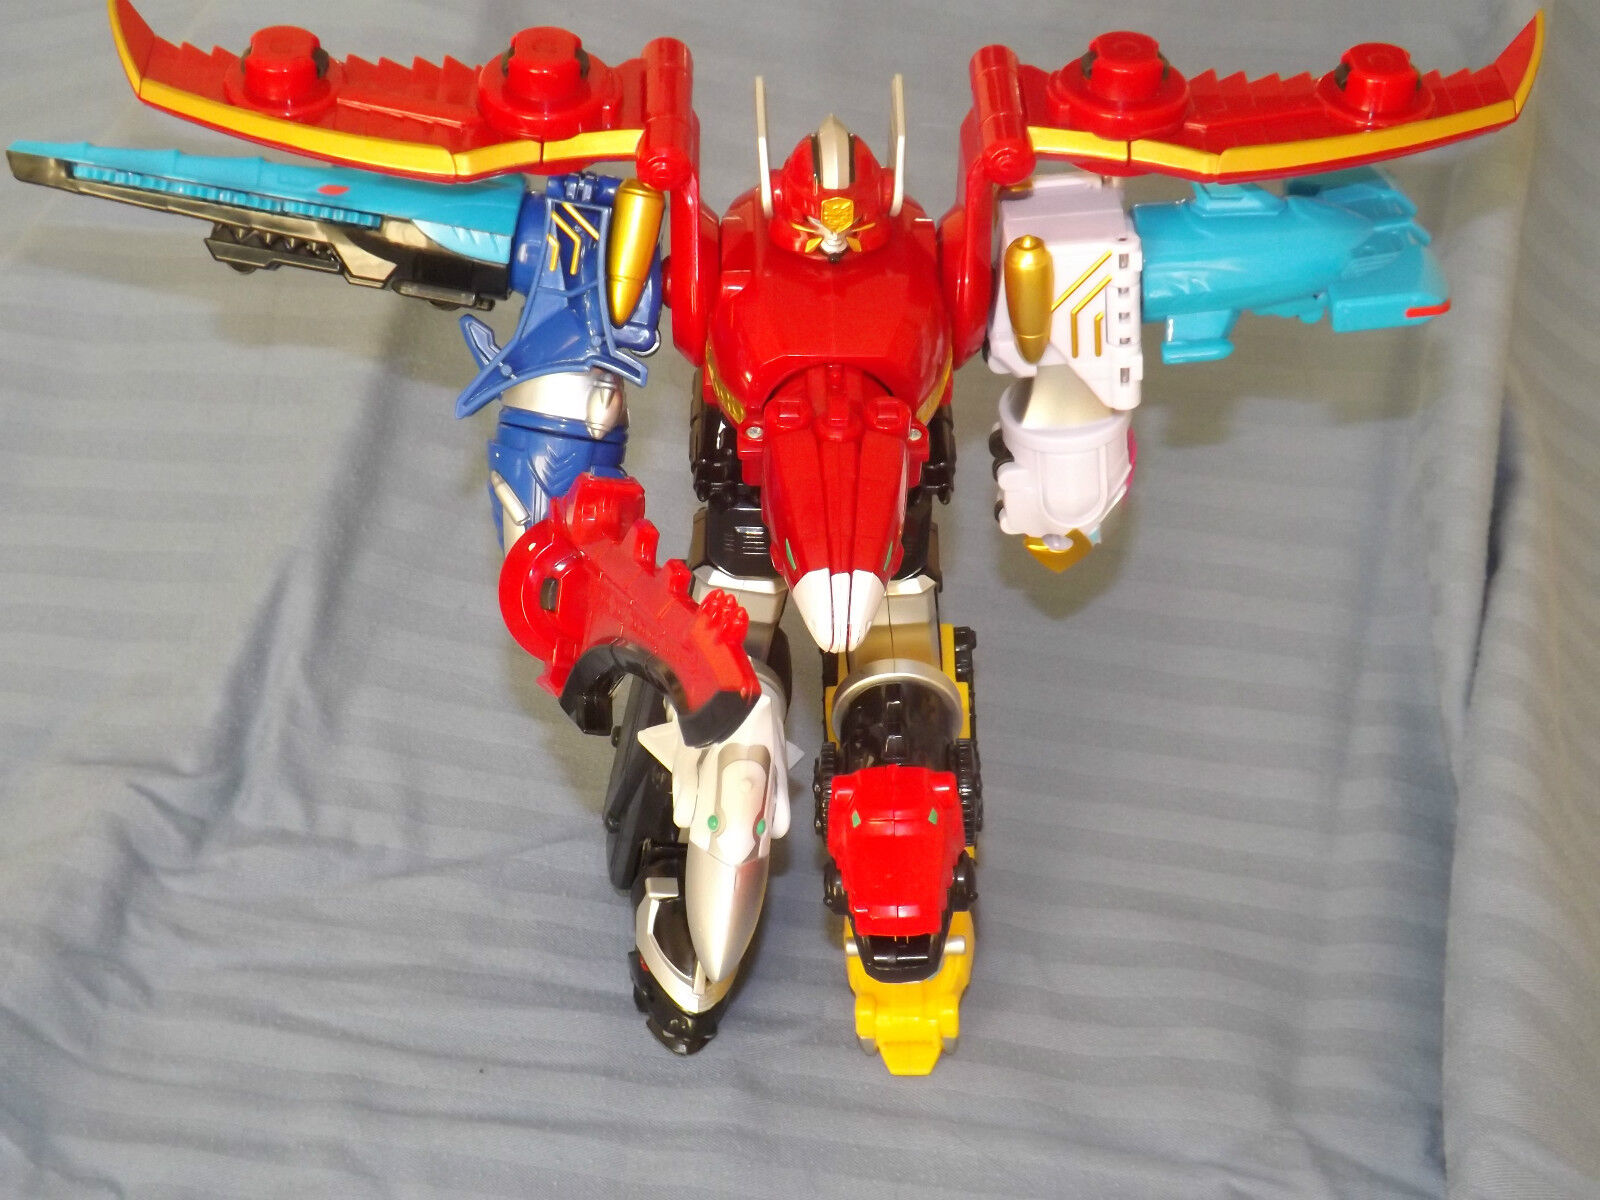 LARGE MEGAFORCE POWER RANGERS RANGER MEGAZORD FREE UK POSTAGE MEGA FORCE